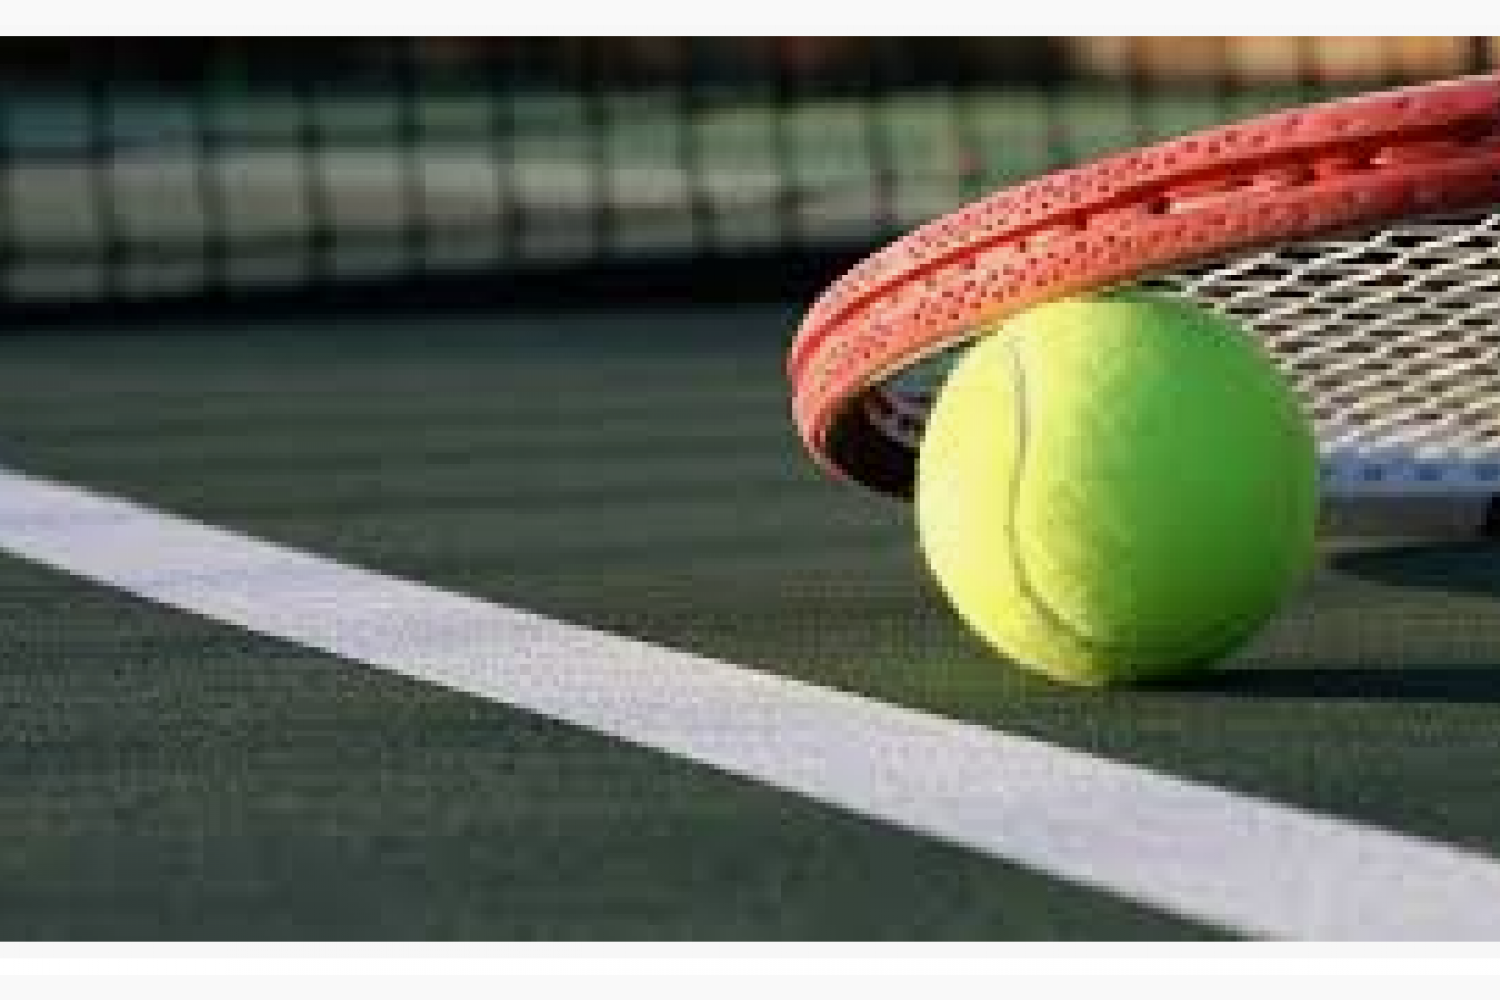 Temporary facility to allow Kilmacud Crokes GAA members become members of Glenalbyn Tennis Club